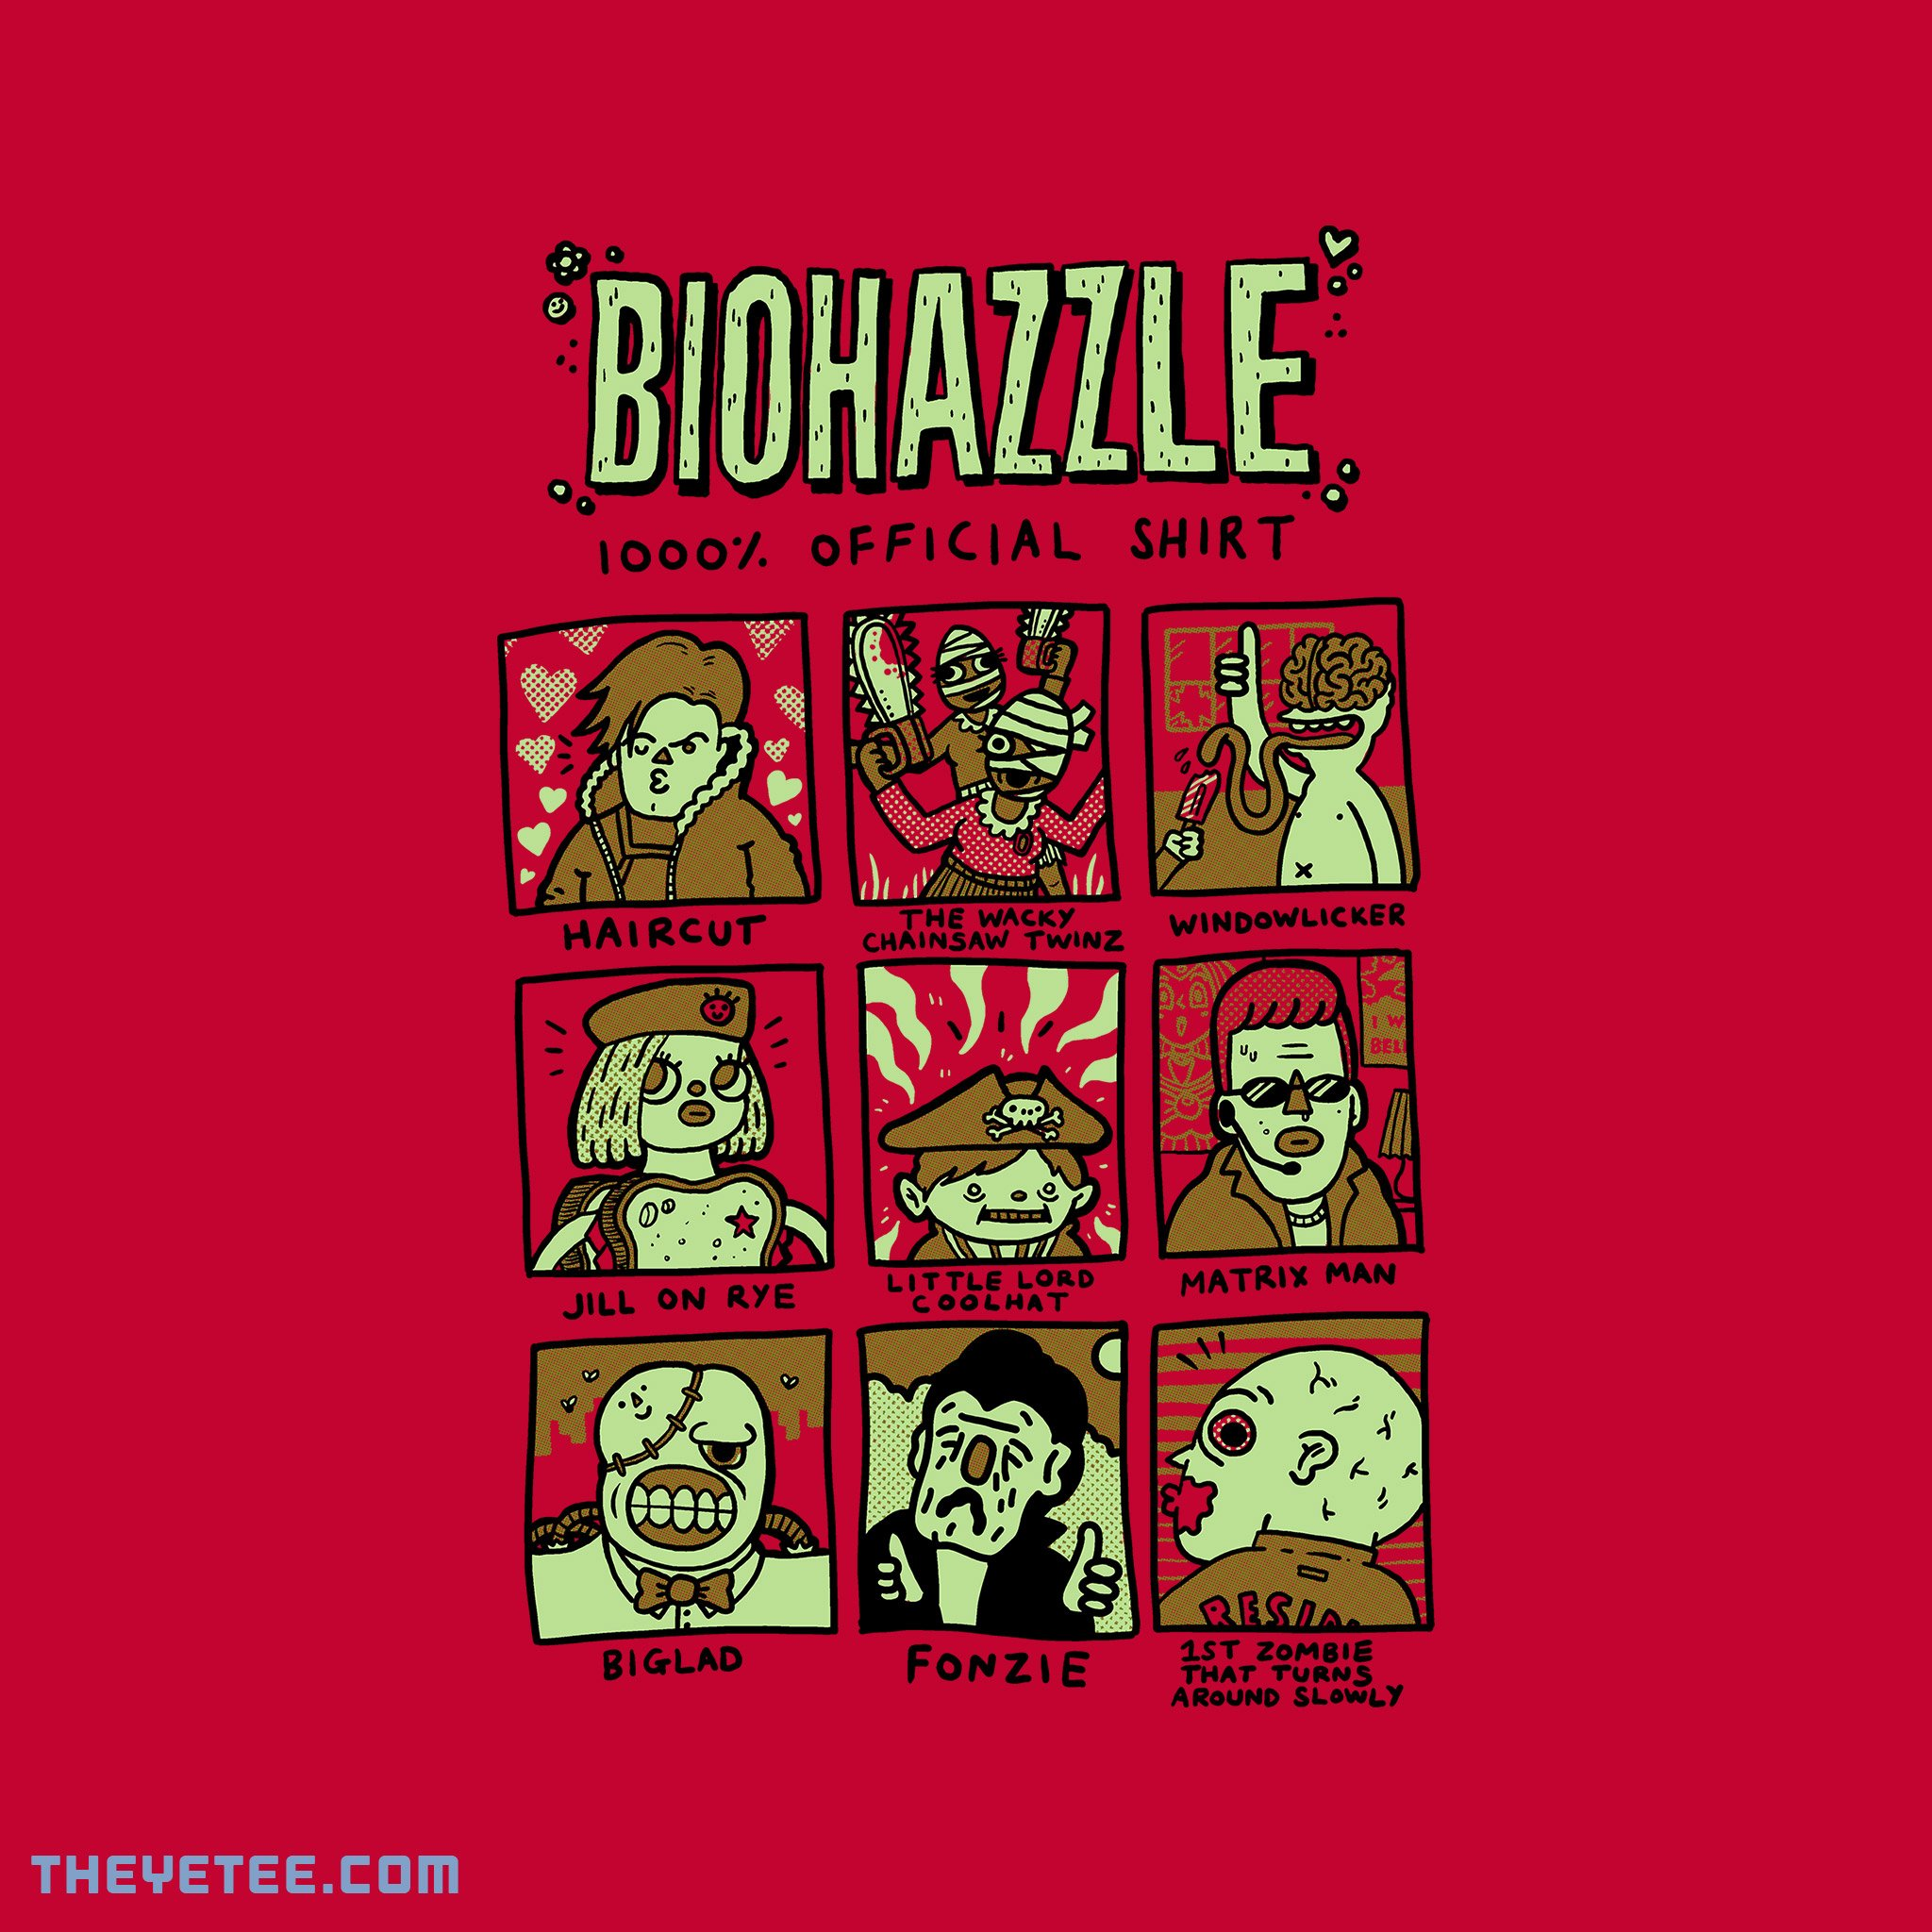 The Yetee: Biohazzle 1000% Official Shirt